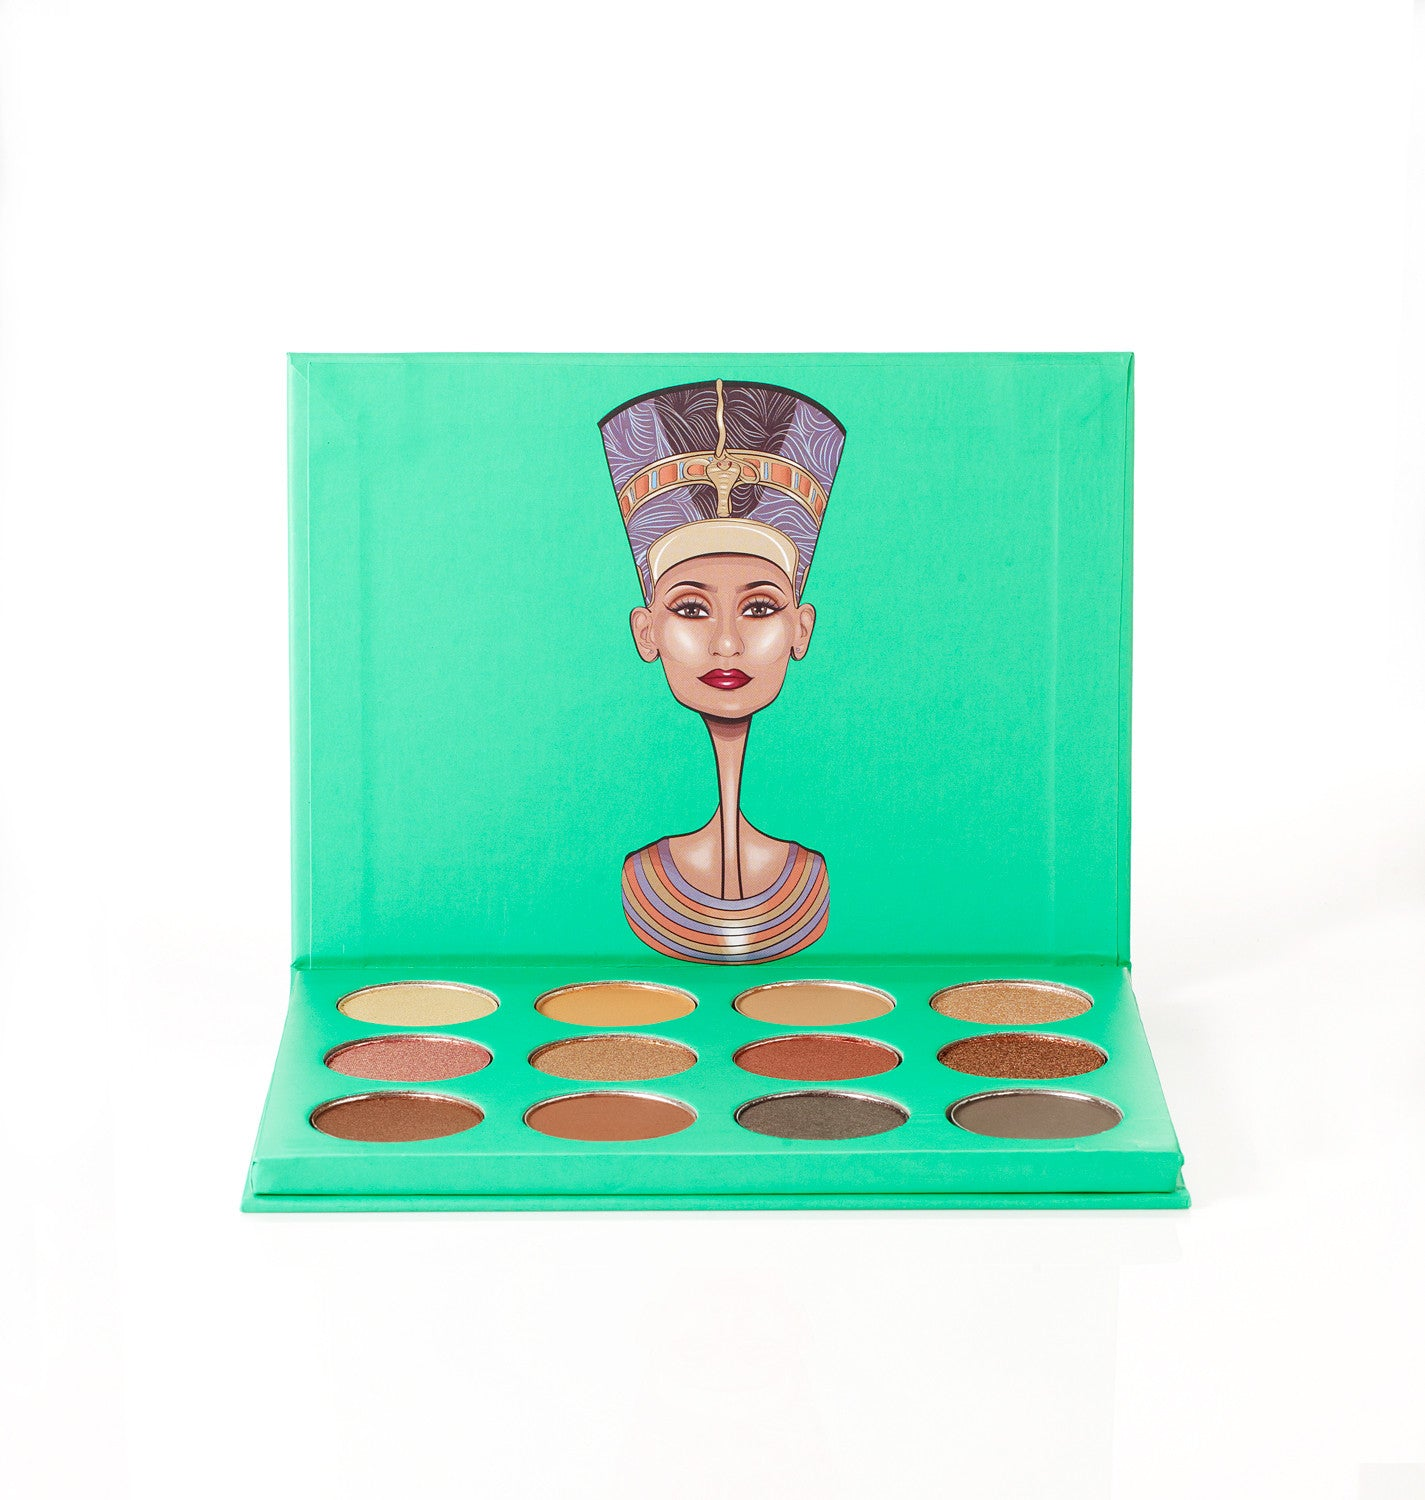 The Nubian Palette